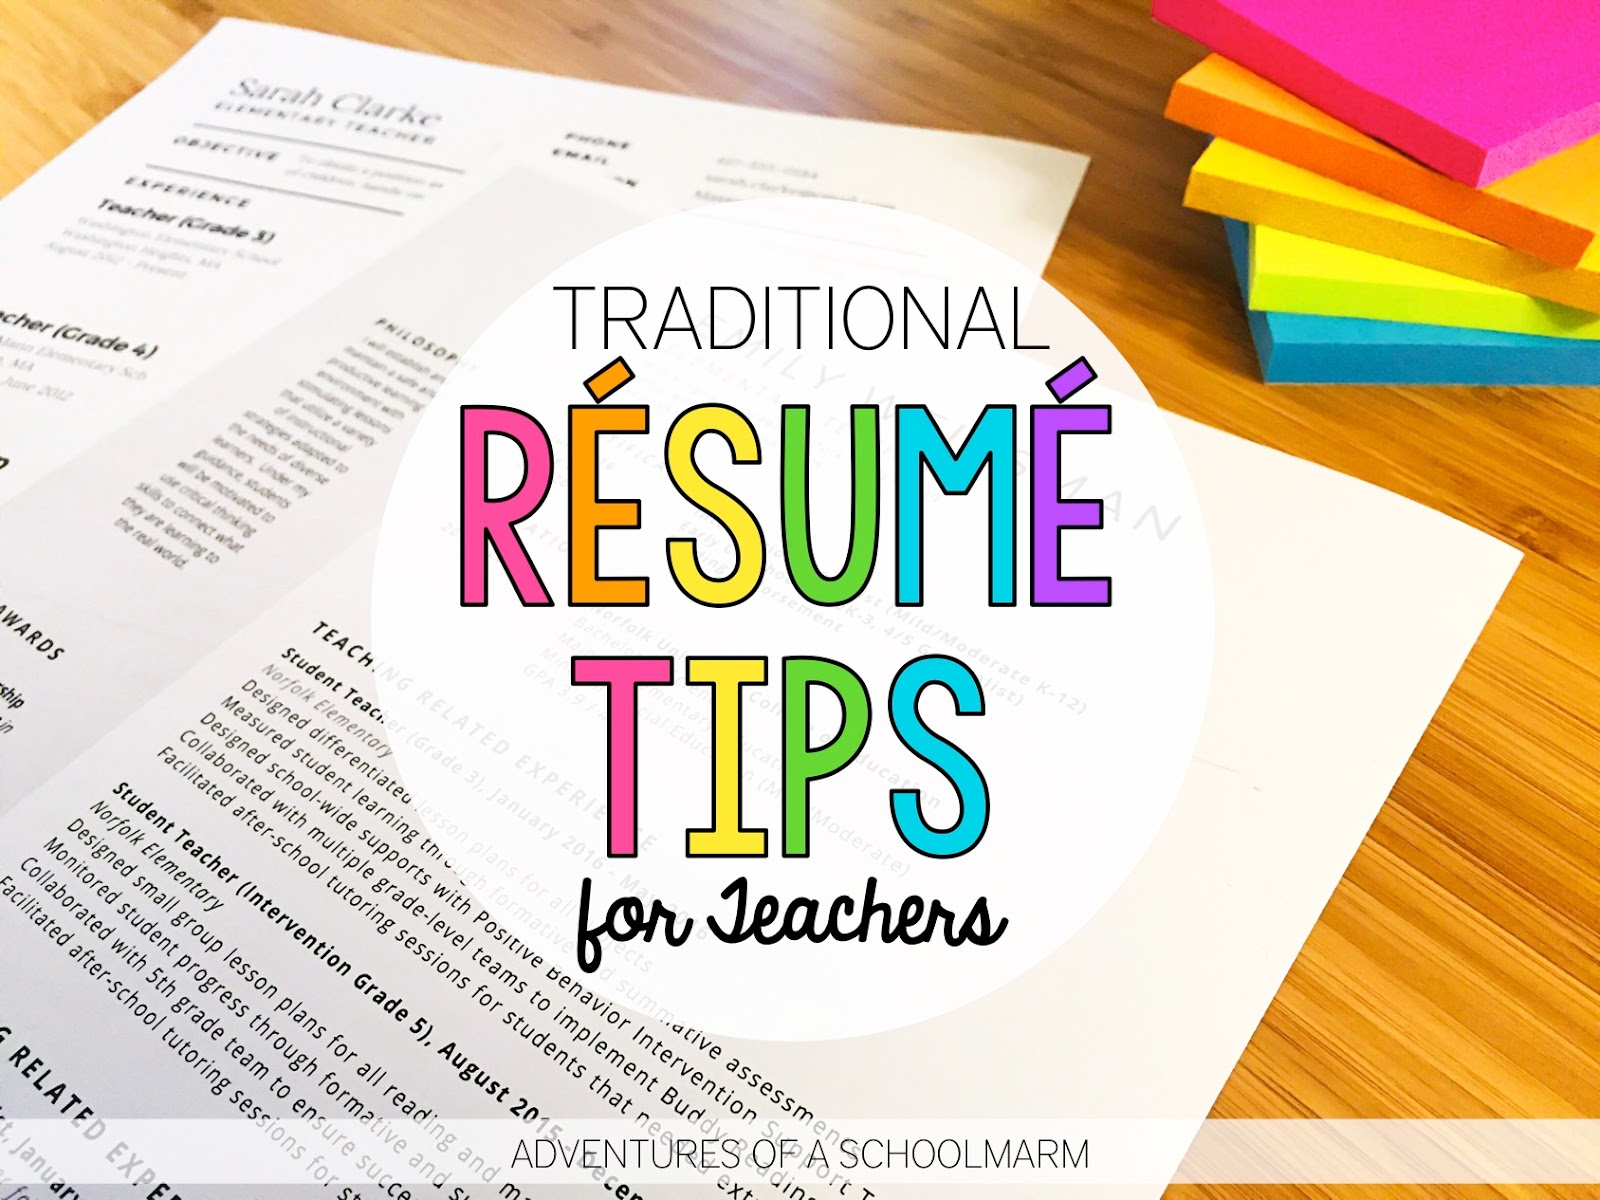 Do You Need Help Writing A Résumé For Teaching Jobs? This Post Will Walk You